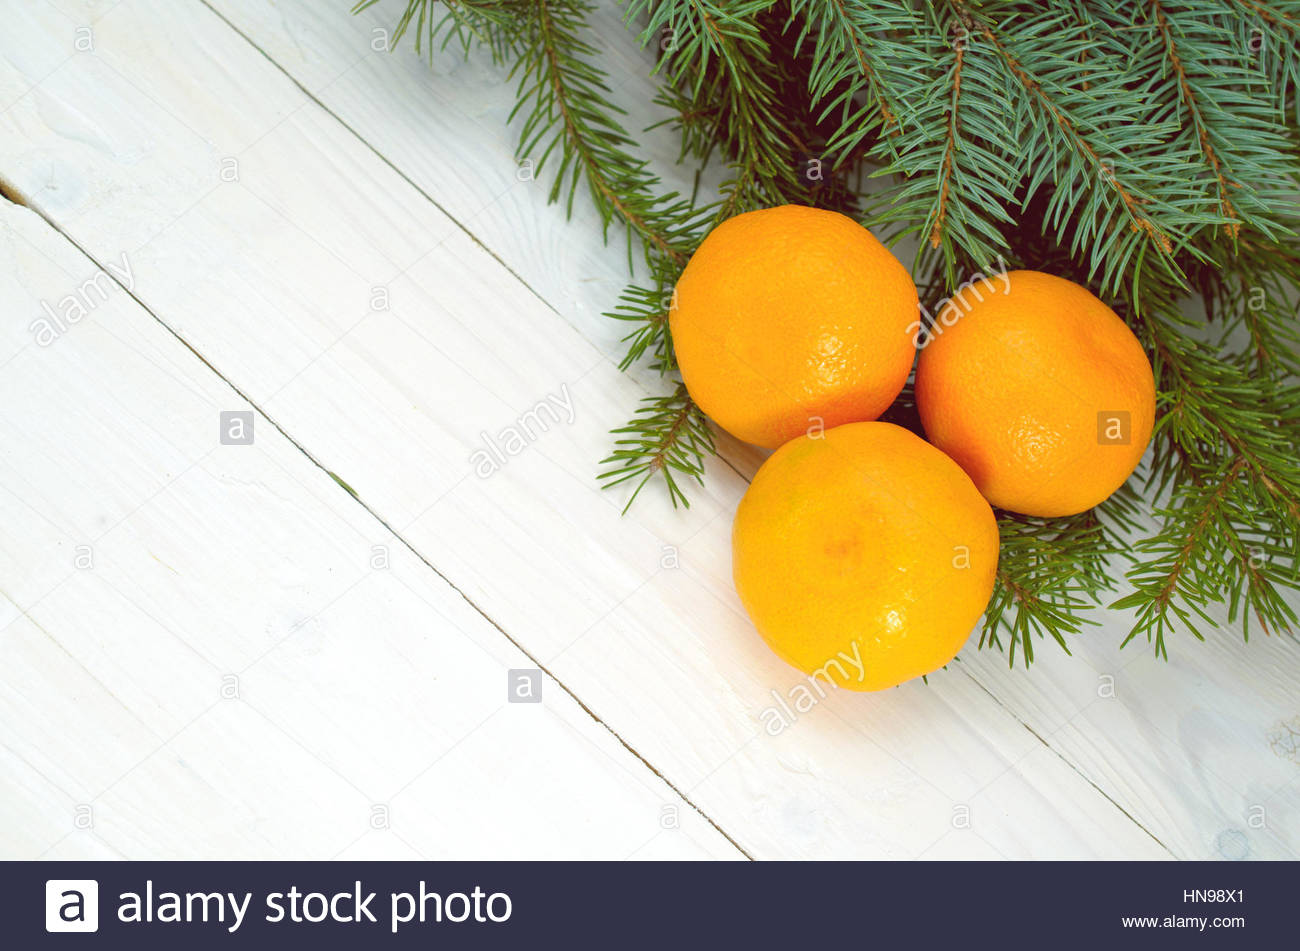 Pine Branches  And Tangerines On A White Background - Stock Image